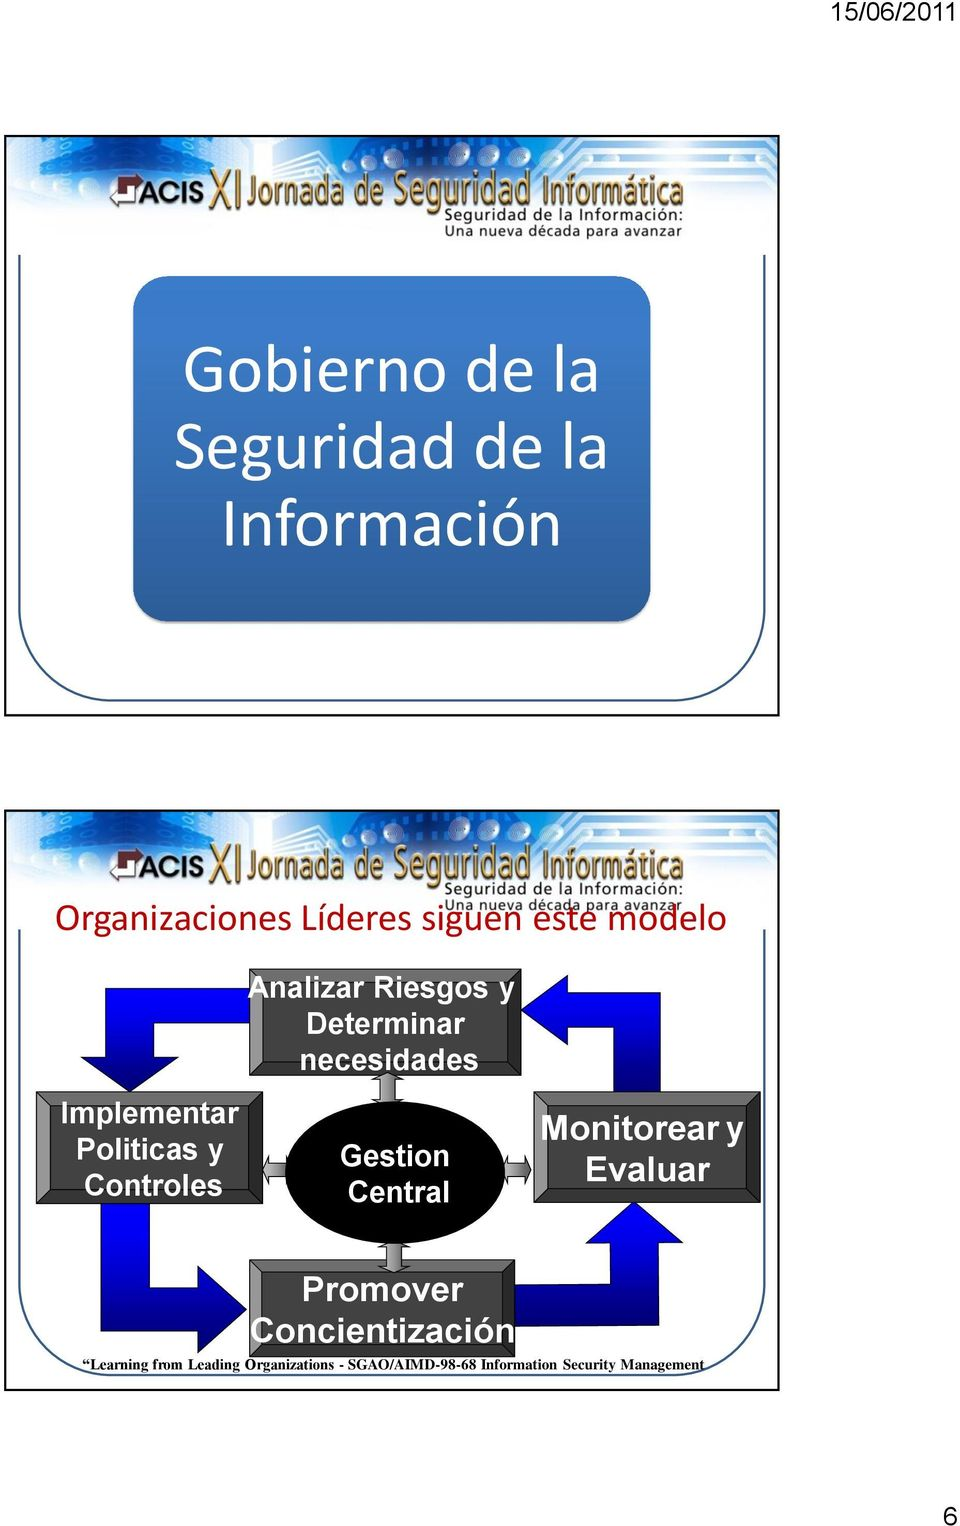 Controles Gestion Central Monitorear y Evaluar Promover Concientización